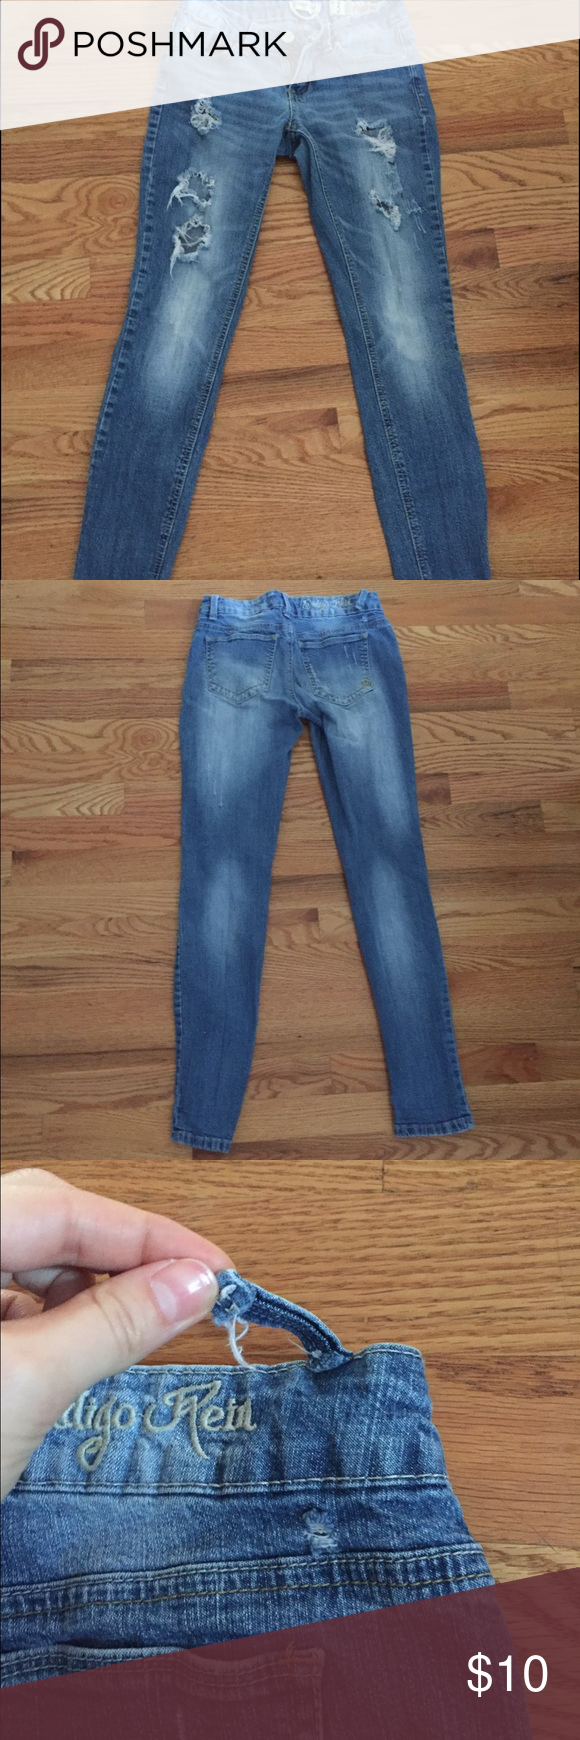 Skinny ripped jeans Gently used one belt buckle is ripped but can be fixed size 3 Jeans Skinny